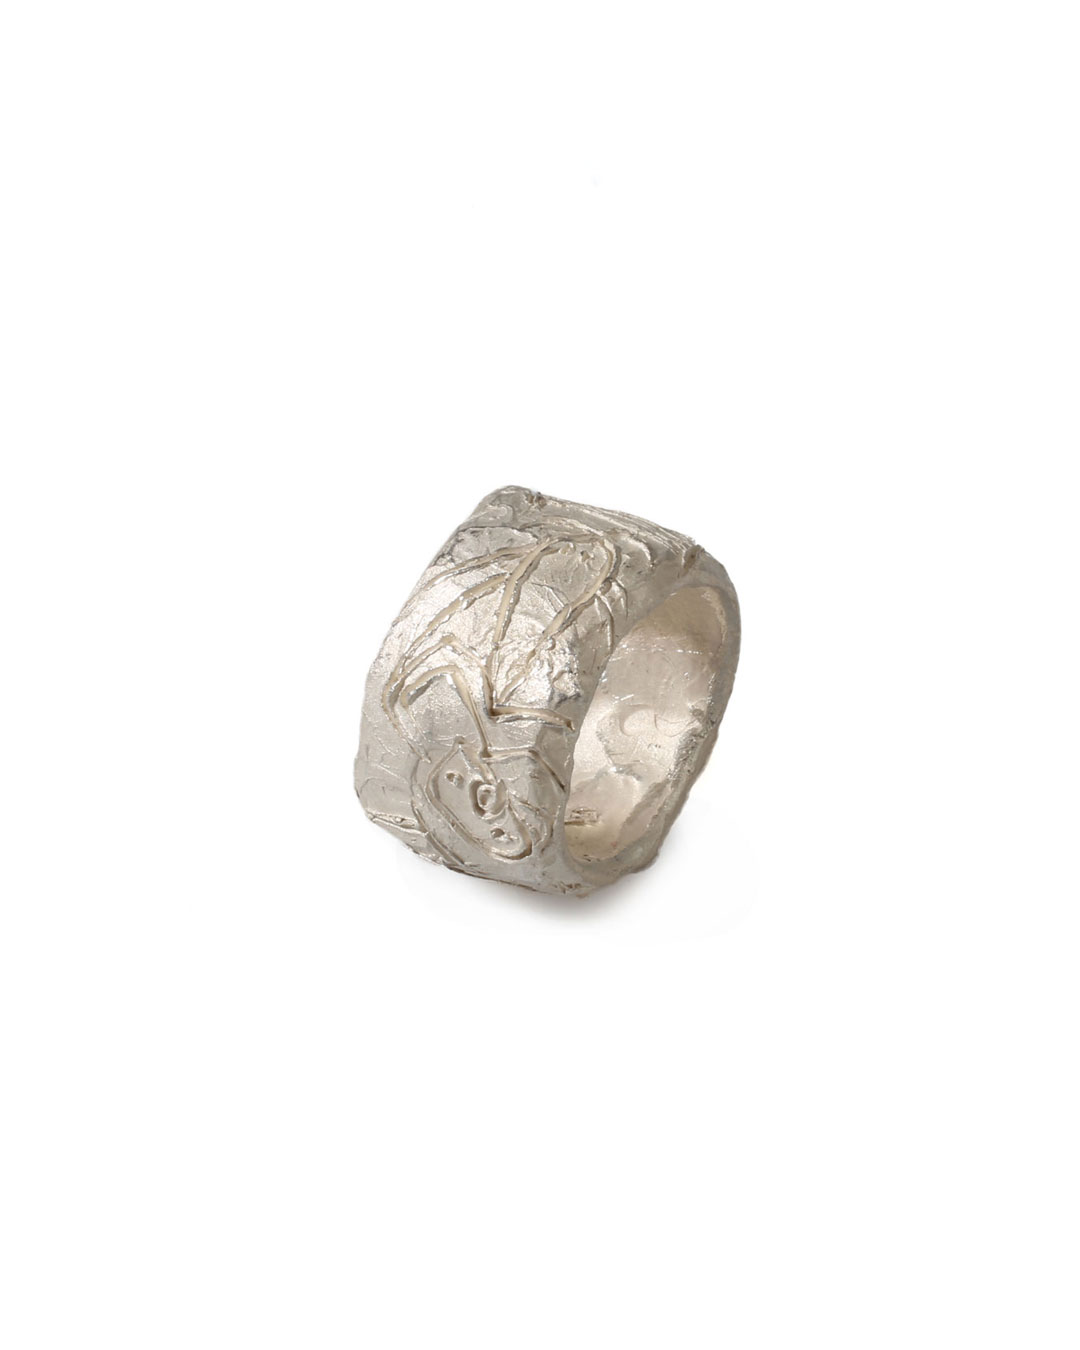 Juliane Brandes, untitled, 2014, ring; silver, 24 x 15 mm, €730